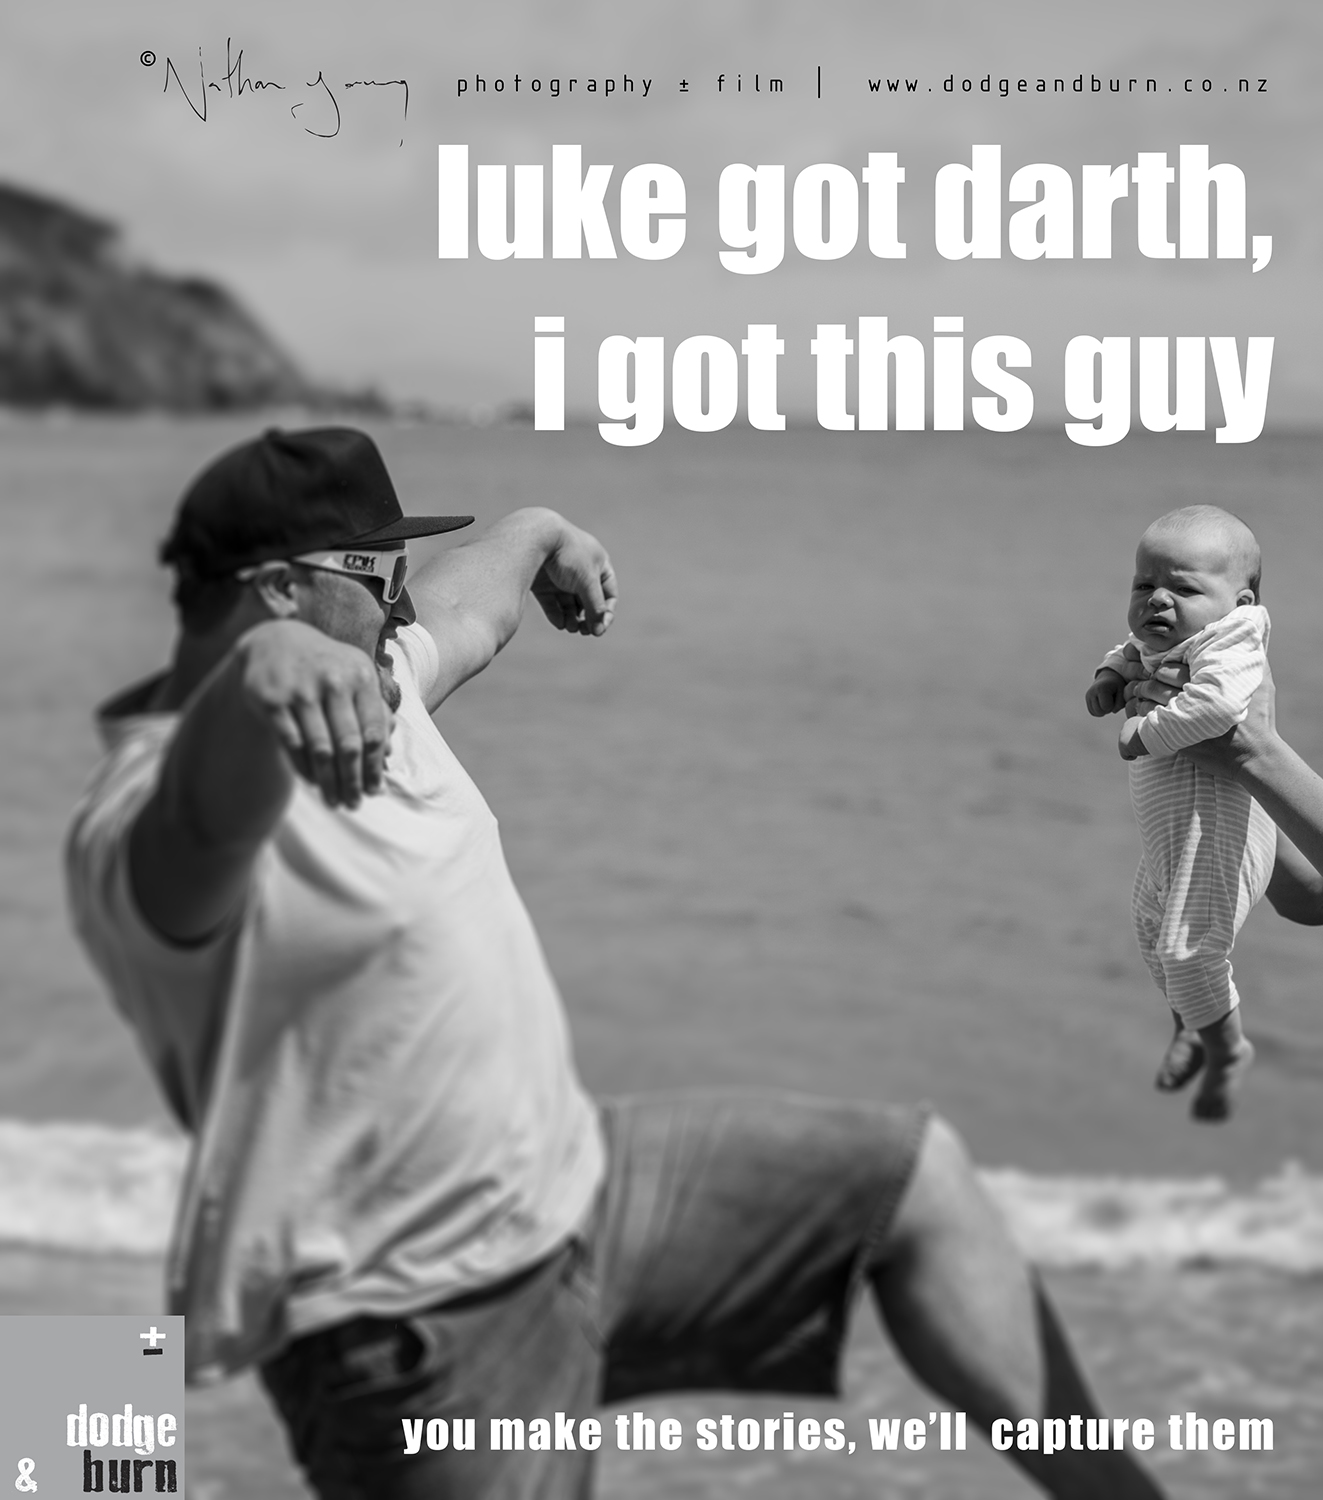 dodge ± burn_AD_luke got darth2.jpg